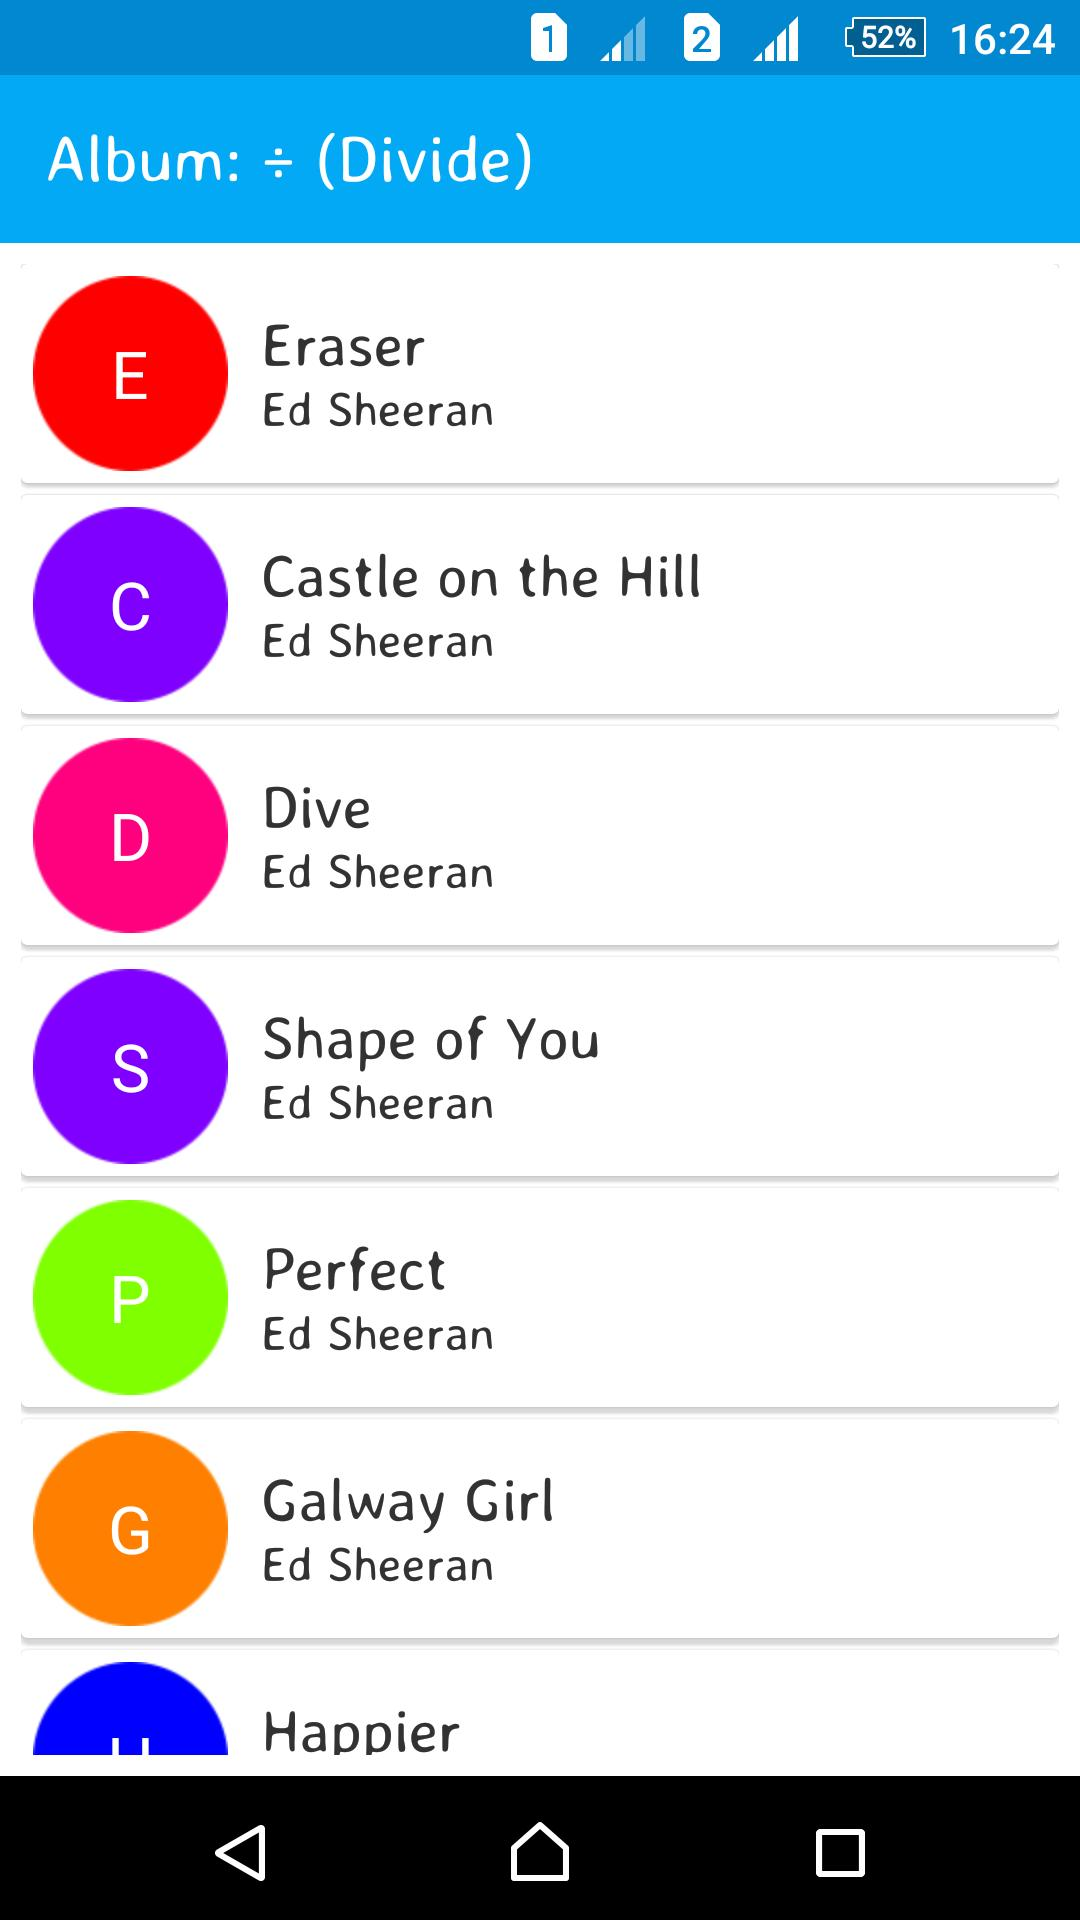 Divide - Ed Sheeran Lyrics for Android - APK Download